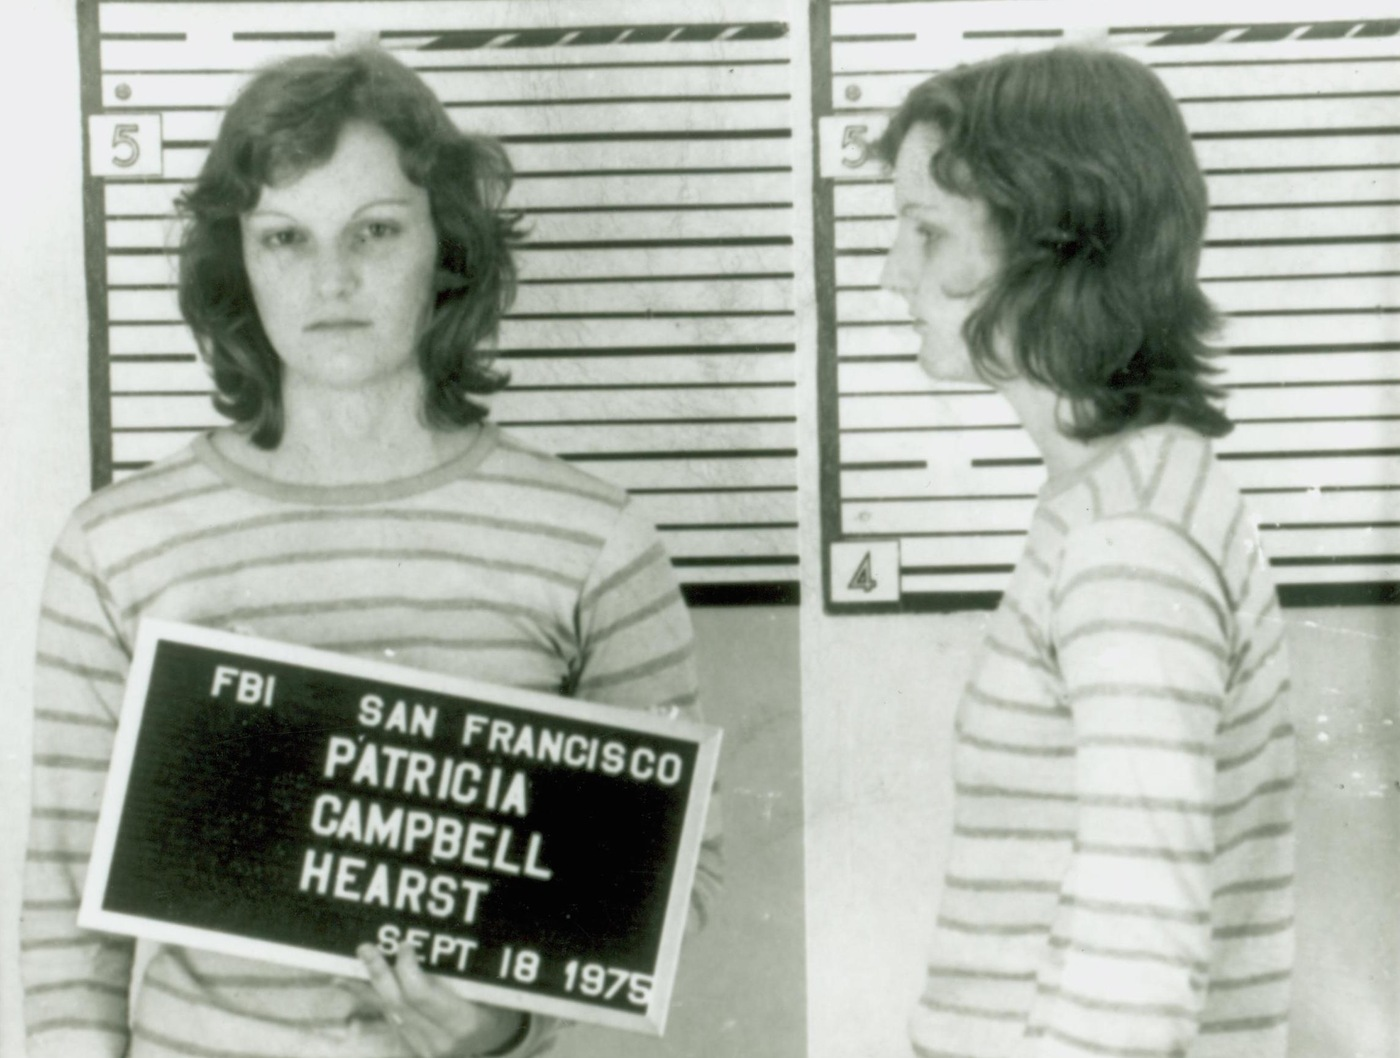 Mugshot of Patty Hearst upon her arrest in San Francisco on September 18, 1975.